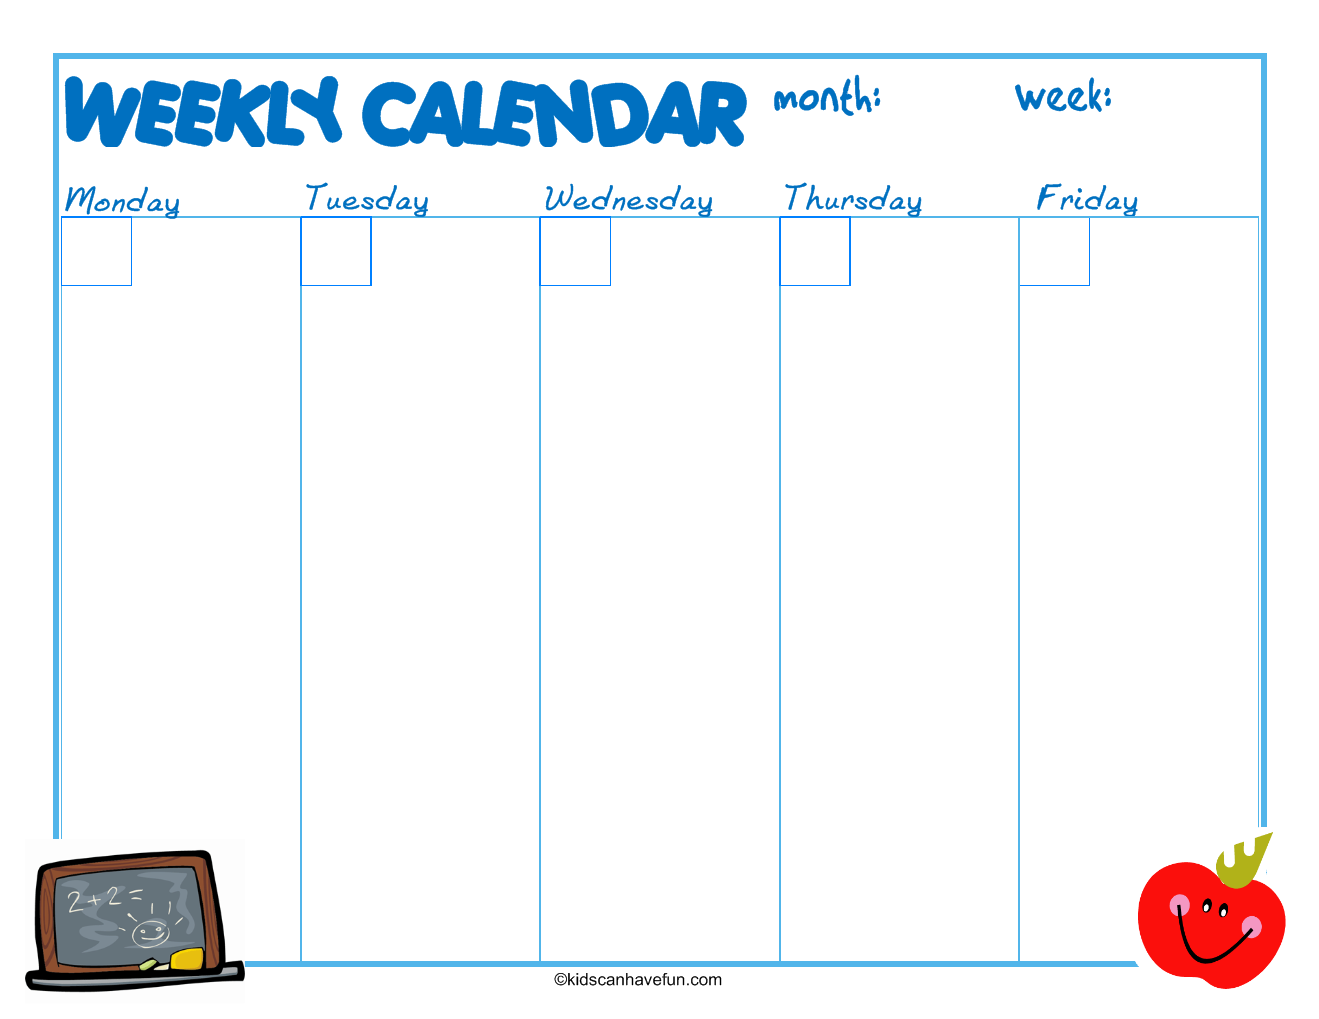 Printable Calendars With Calendar Templates For Each Calendar Month. Fun  Calendars To Color For Home And School.